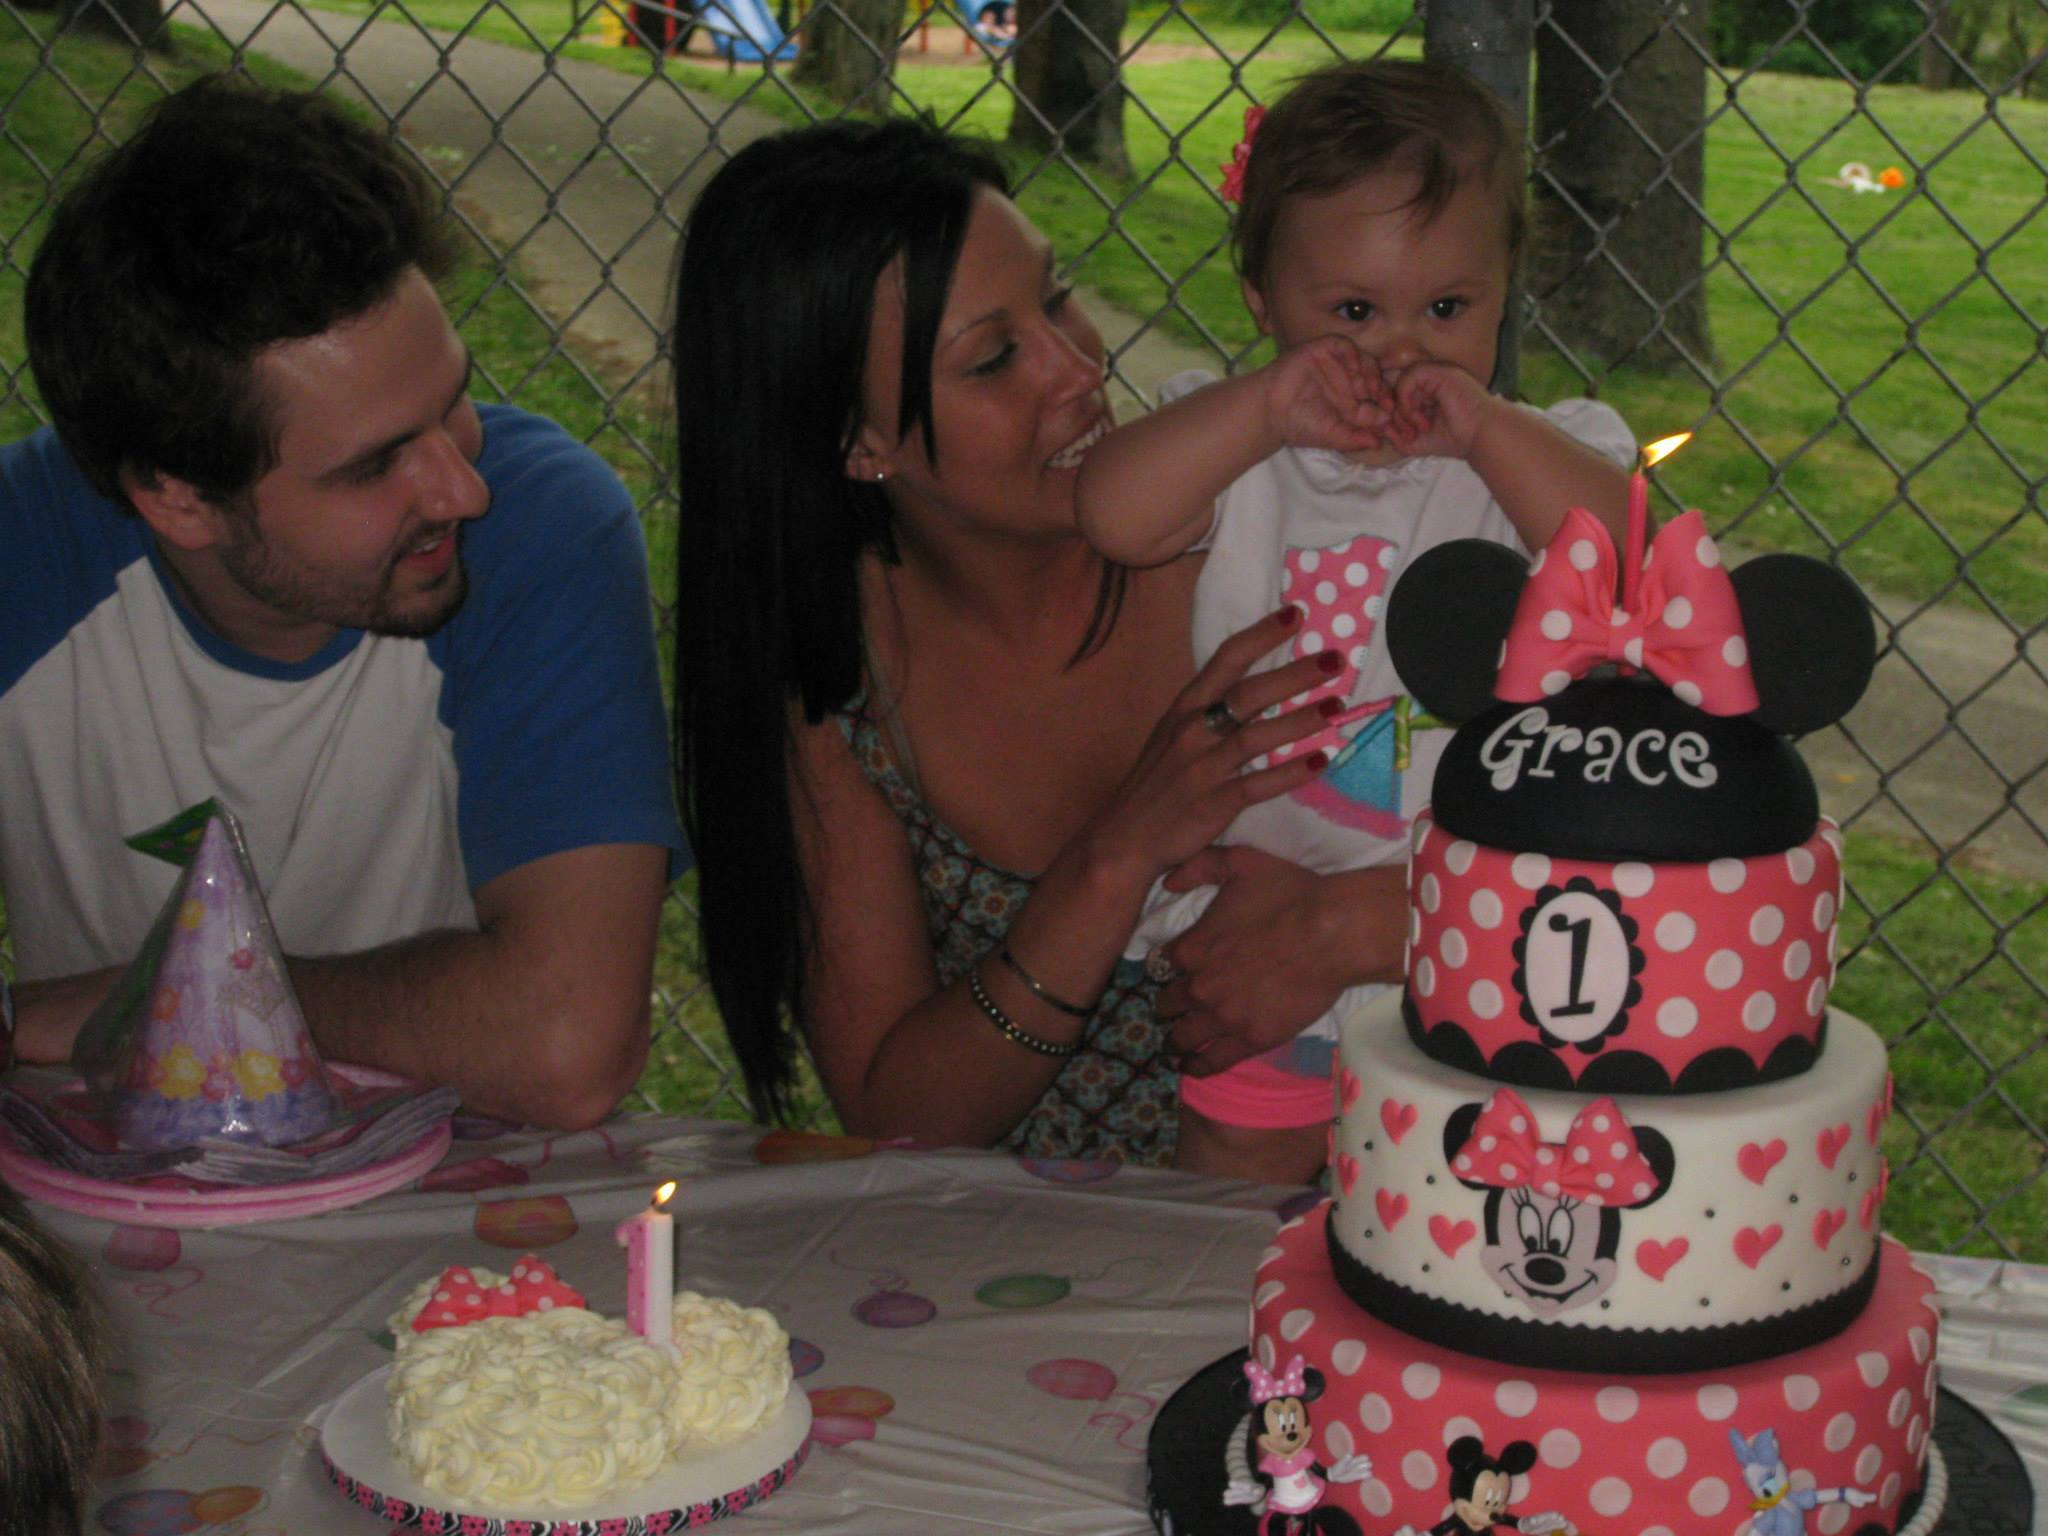 Grace with her Minnie Mouse Cake